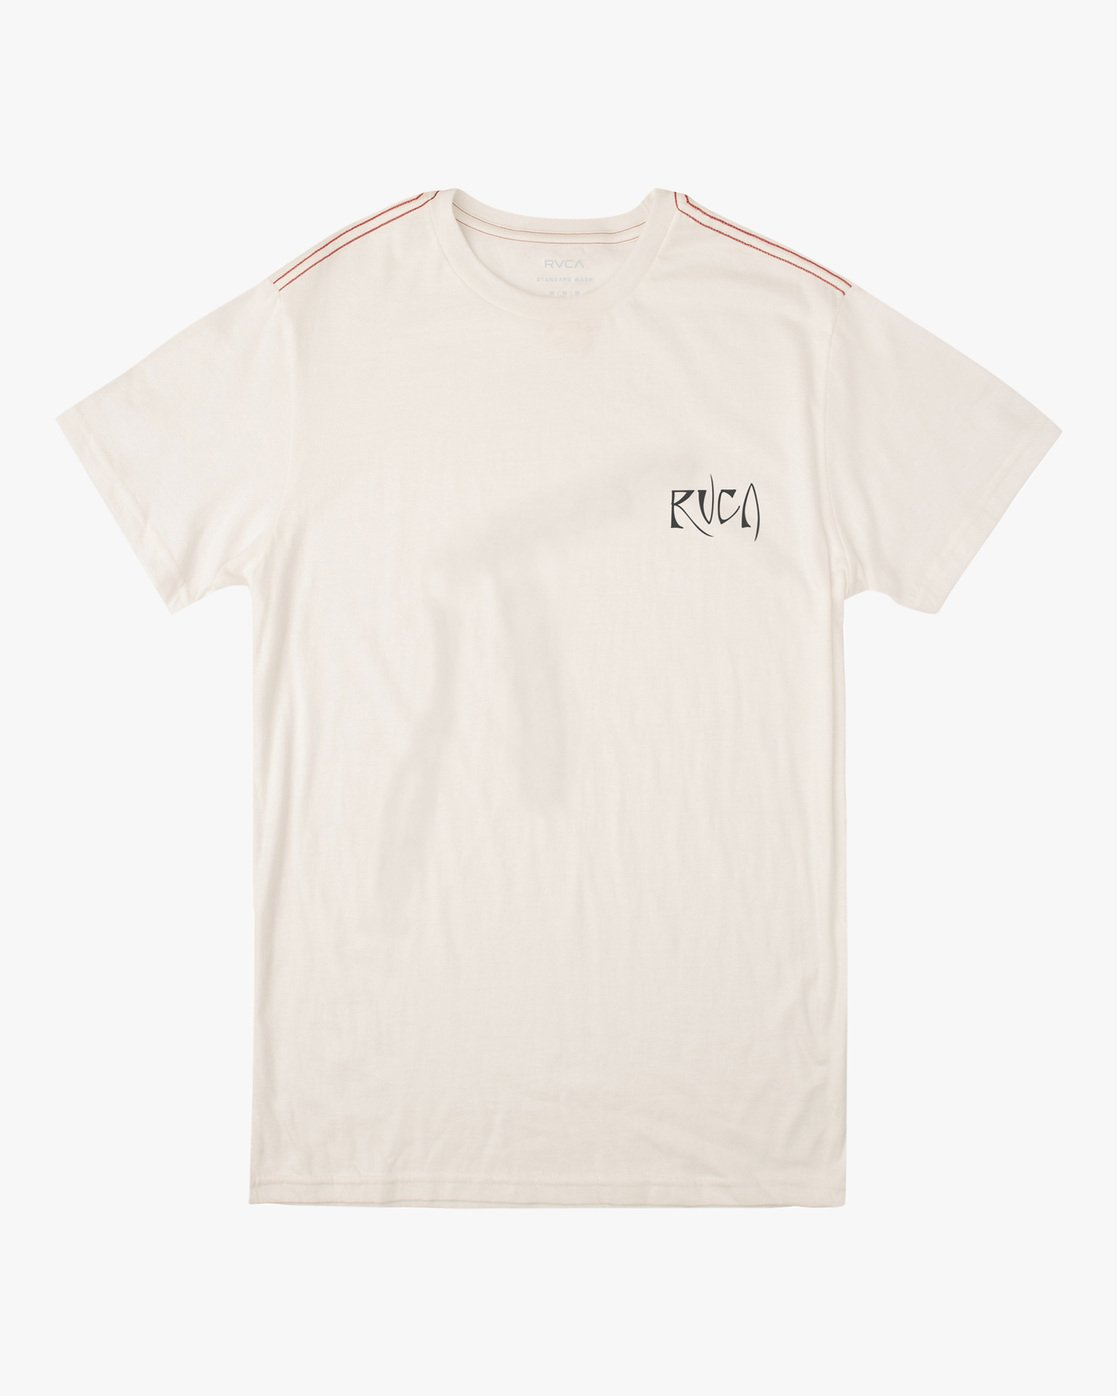 0 Alex Matus Dry Valley T-Shirt White M430WRDV RVCA